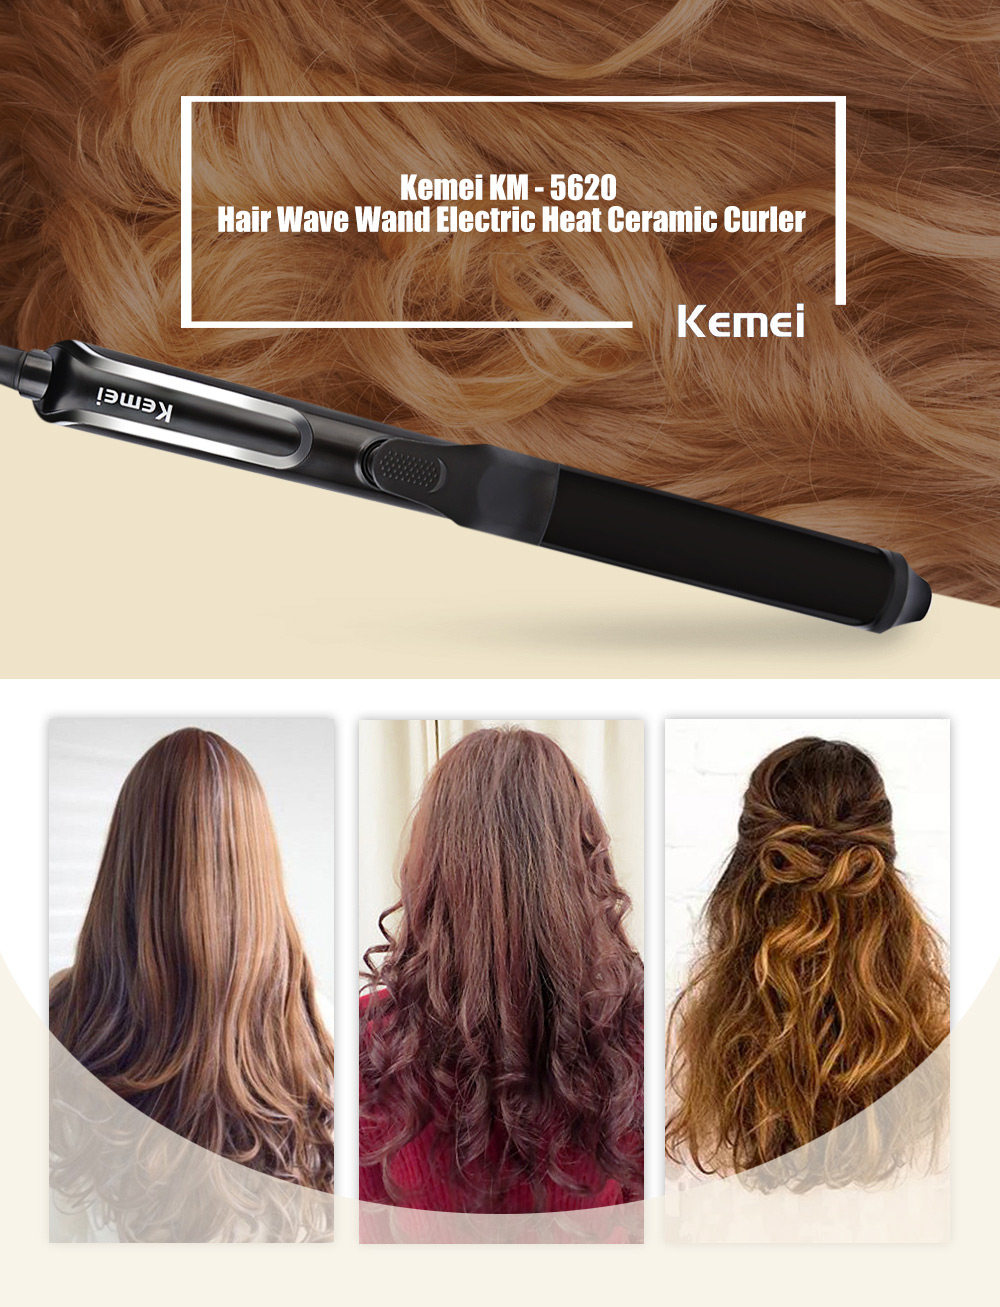 Kemei KM - 5620 Hair Wave Wand Rollers Iron Electric Heat Ceramic Curler